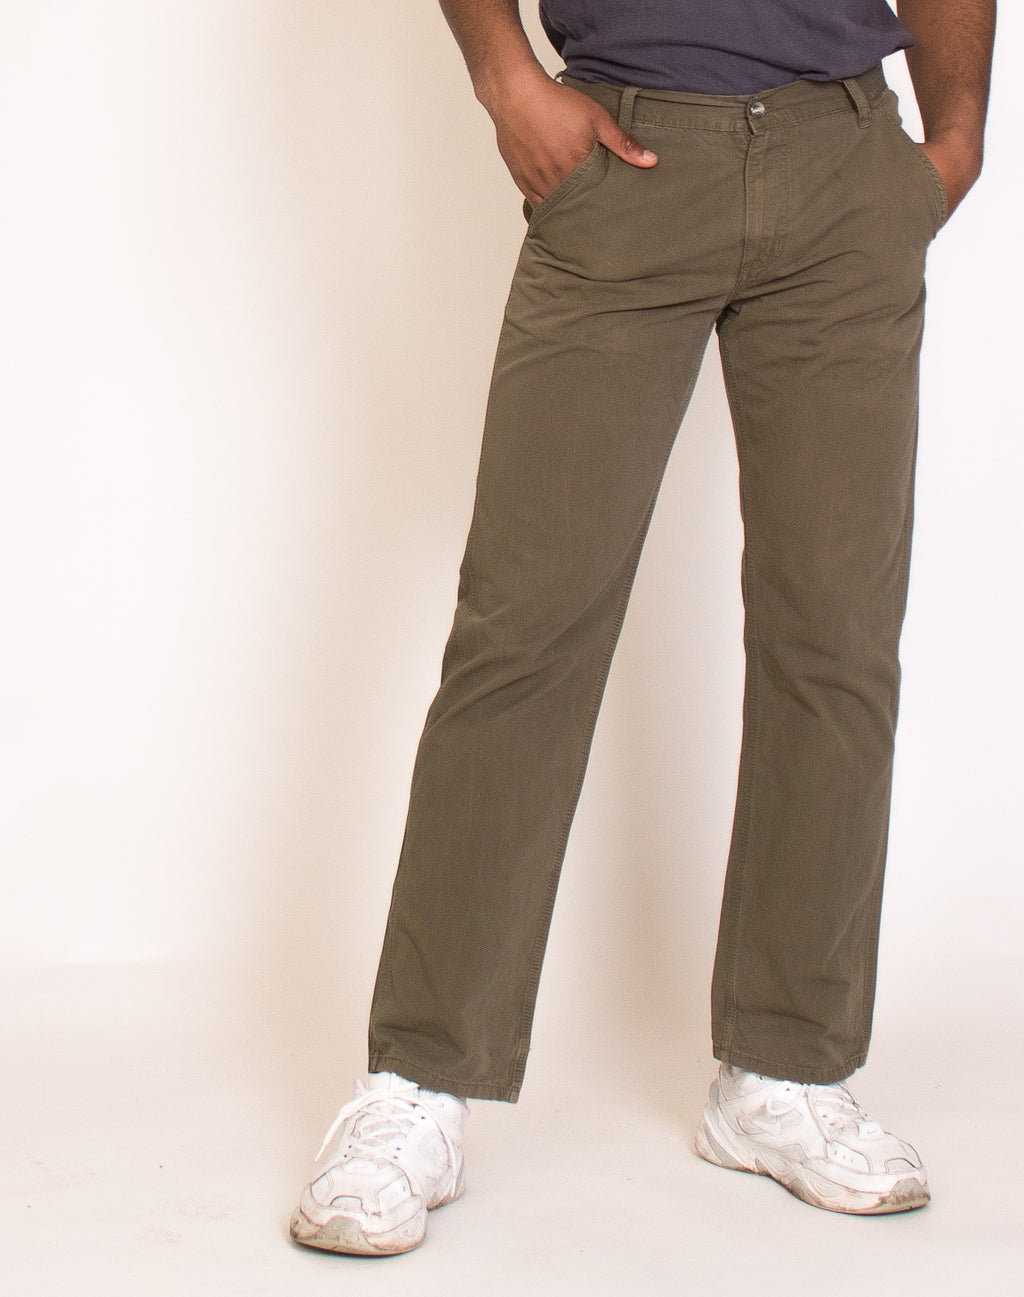 CARHARTT GREEN CARGO TROUSERS